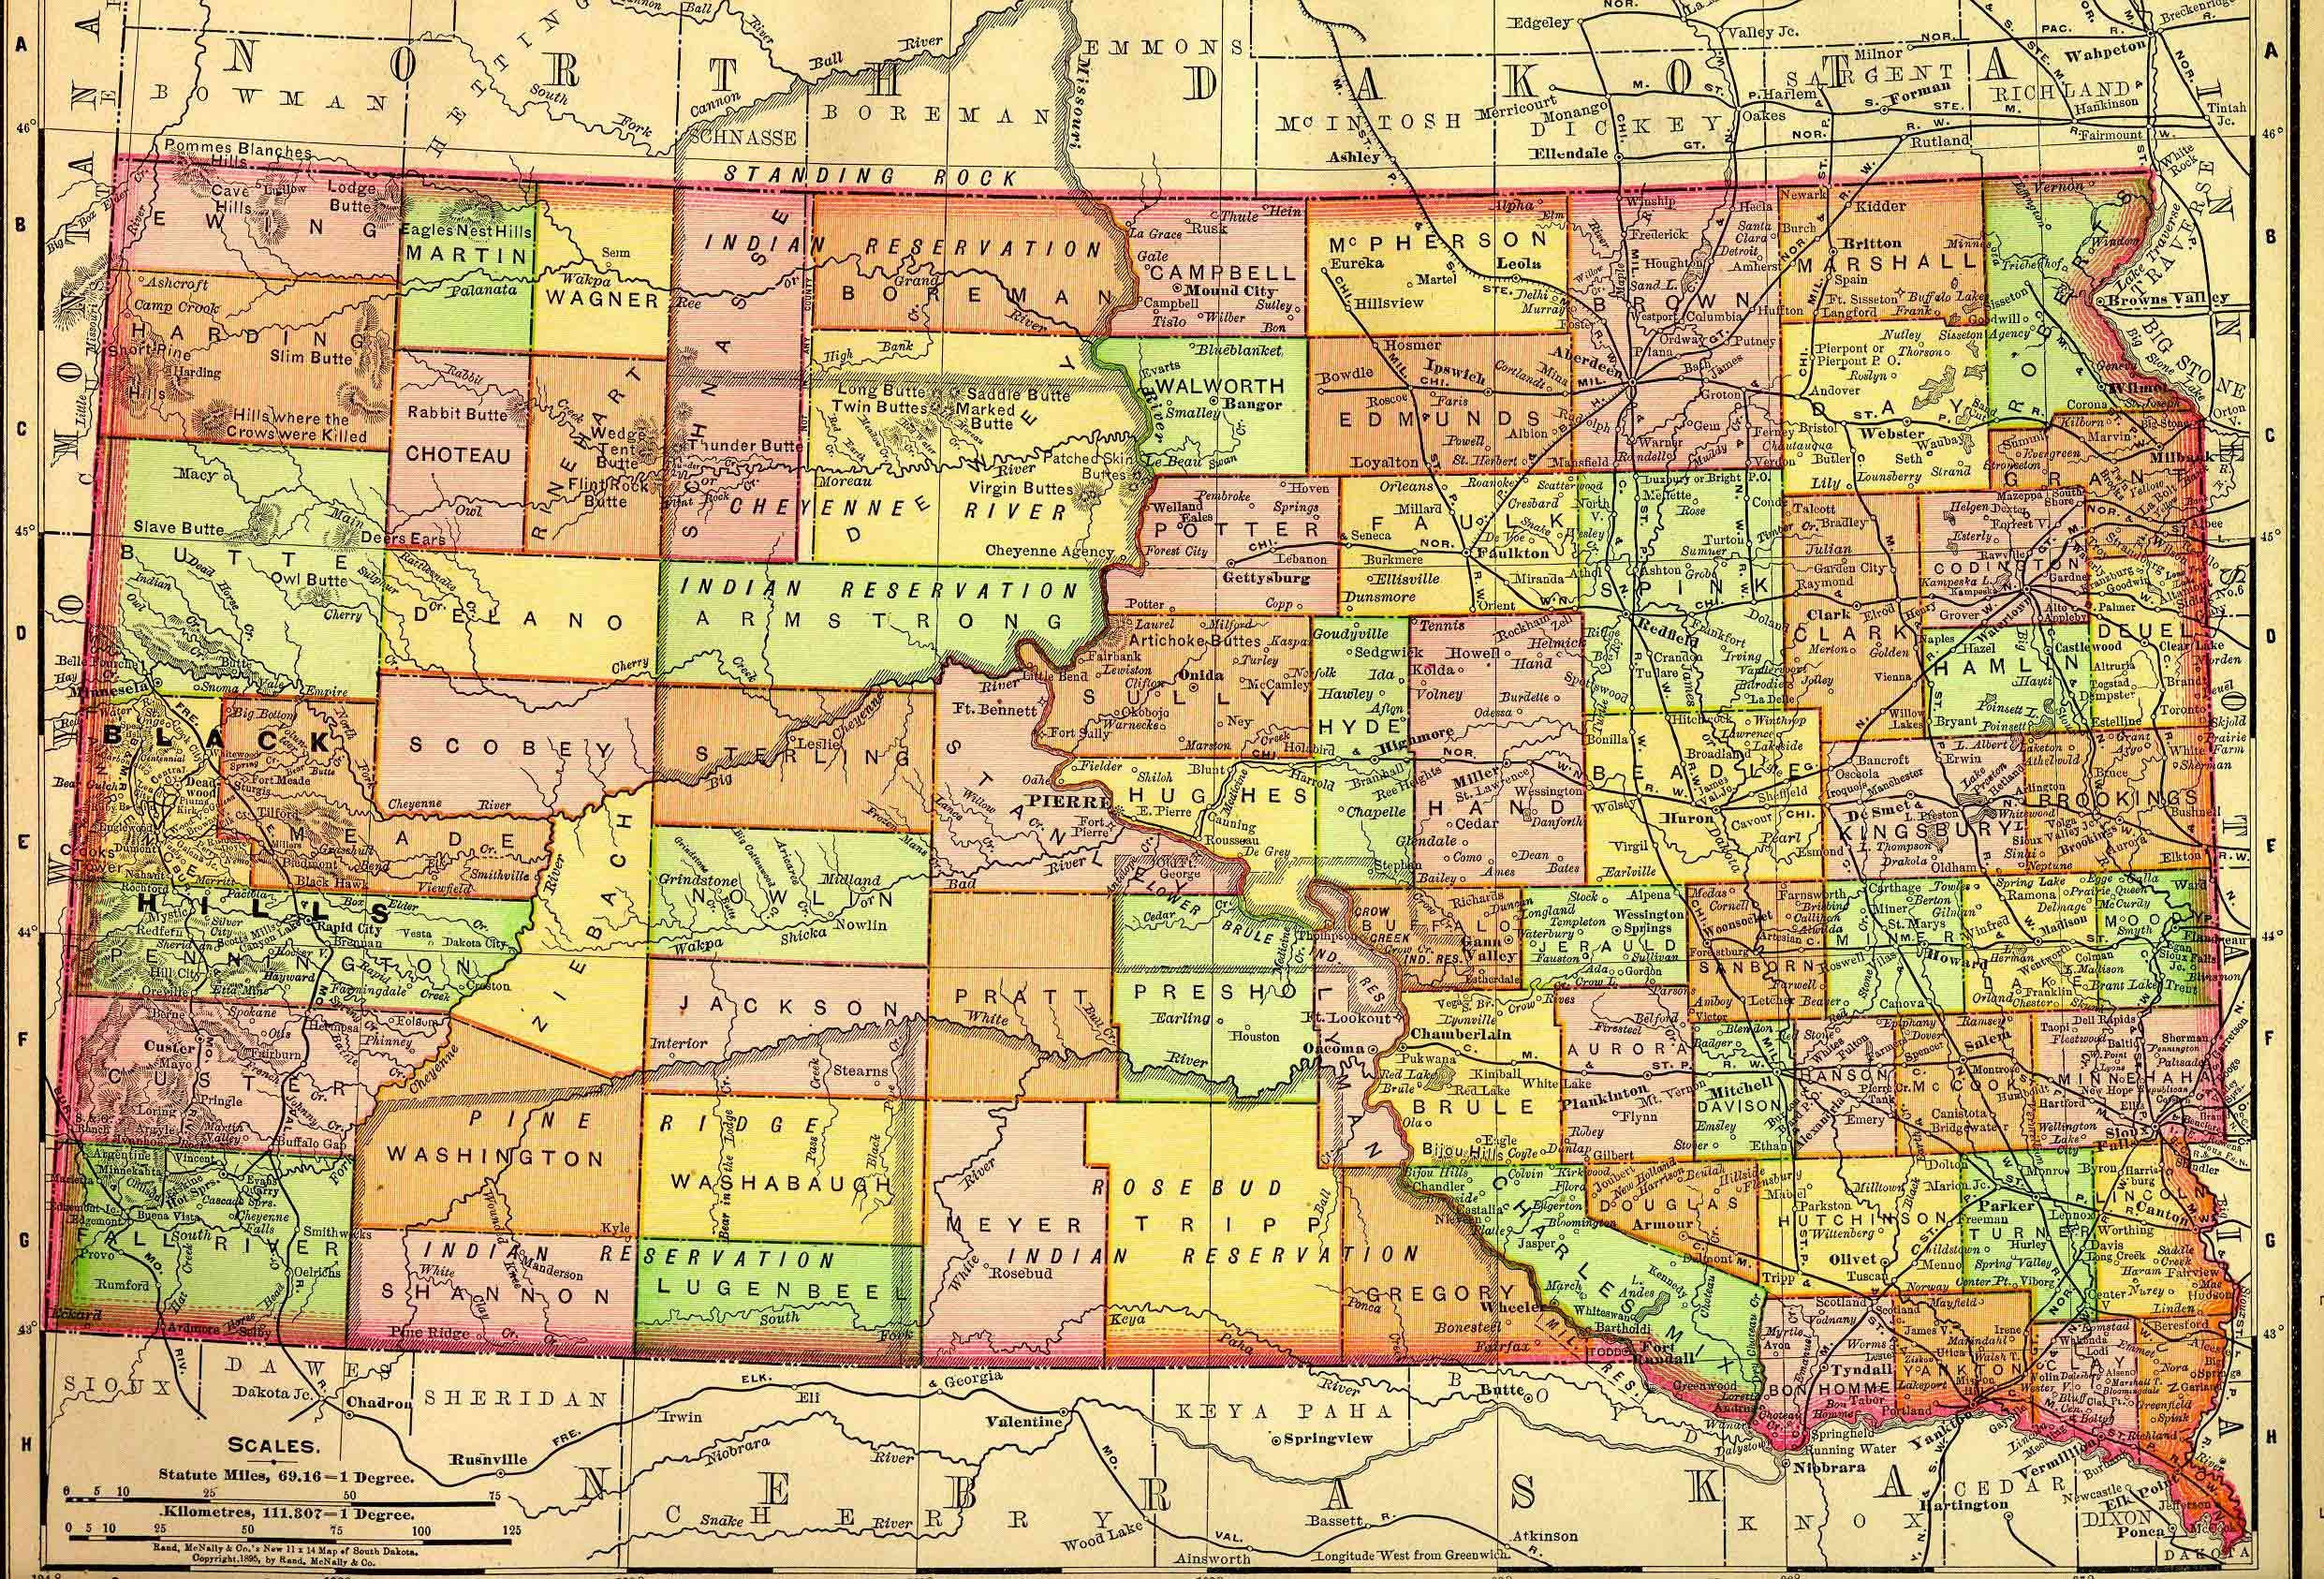 Old SD Map My Home South Dakota Pinterest Vintage A Thing - Map of south dakota